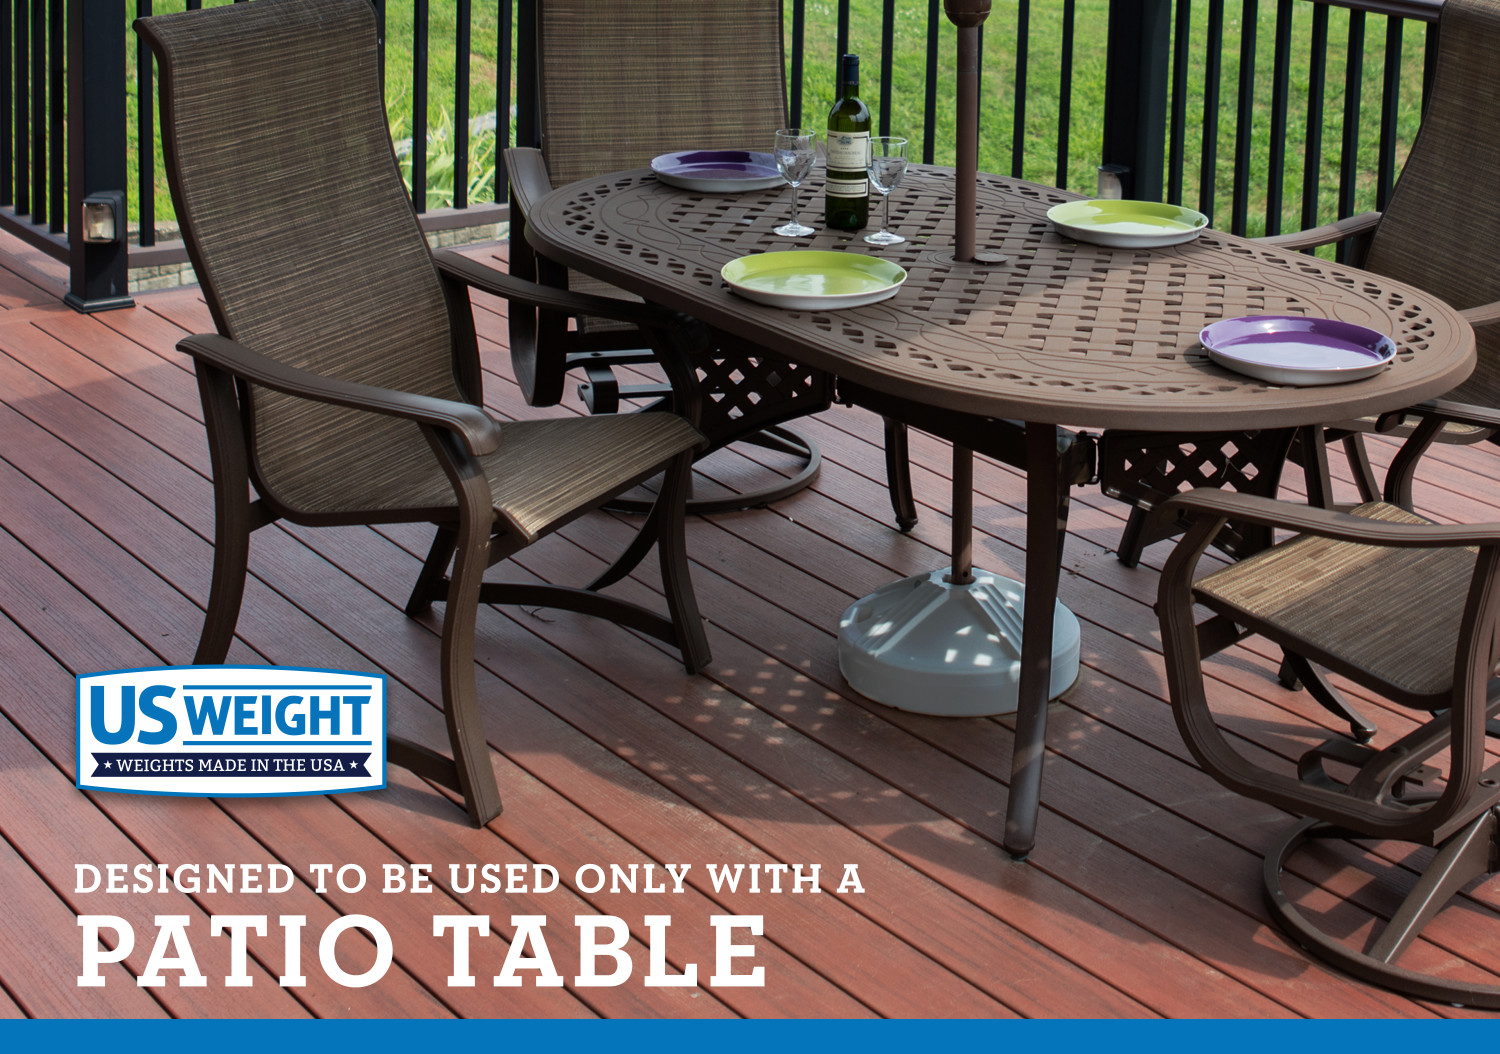 us weight fillable 50 pound umbrella base designed to be used with a patio table black